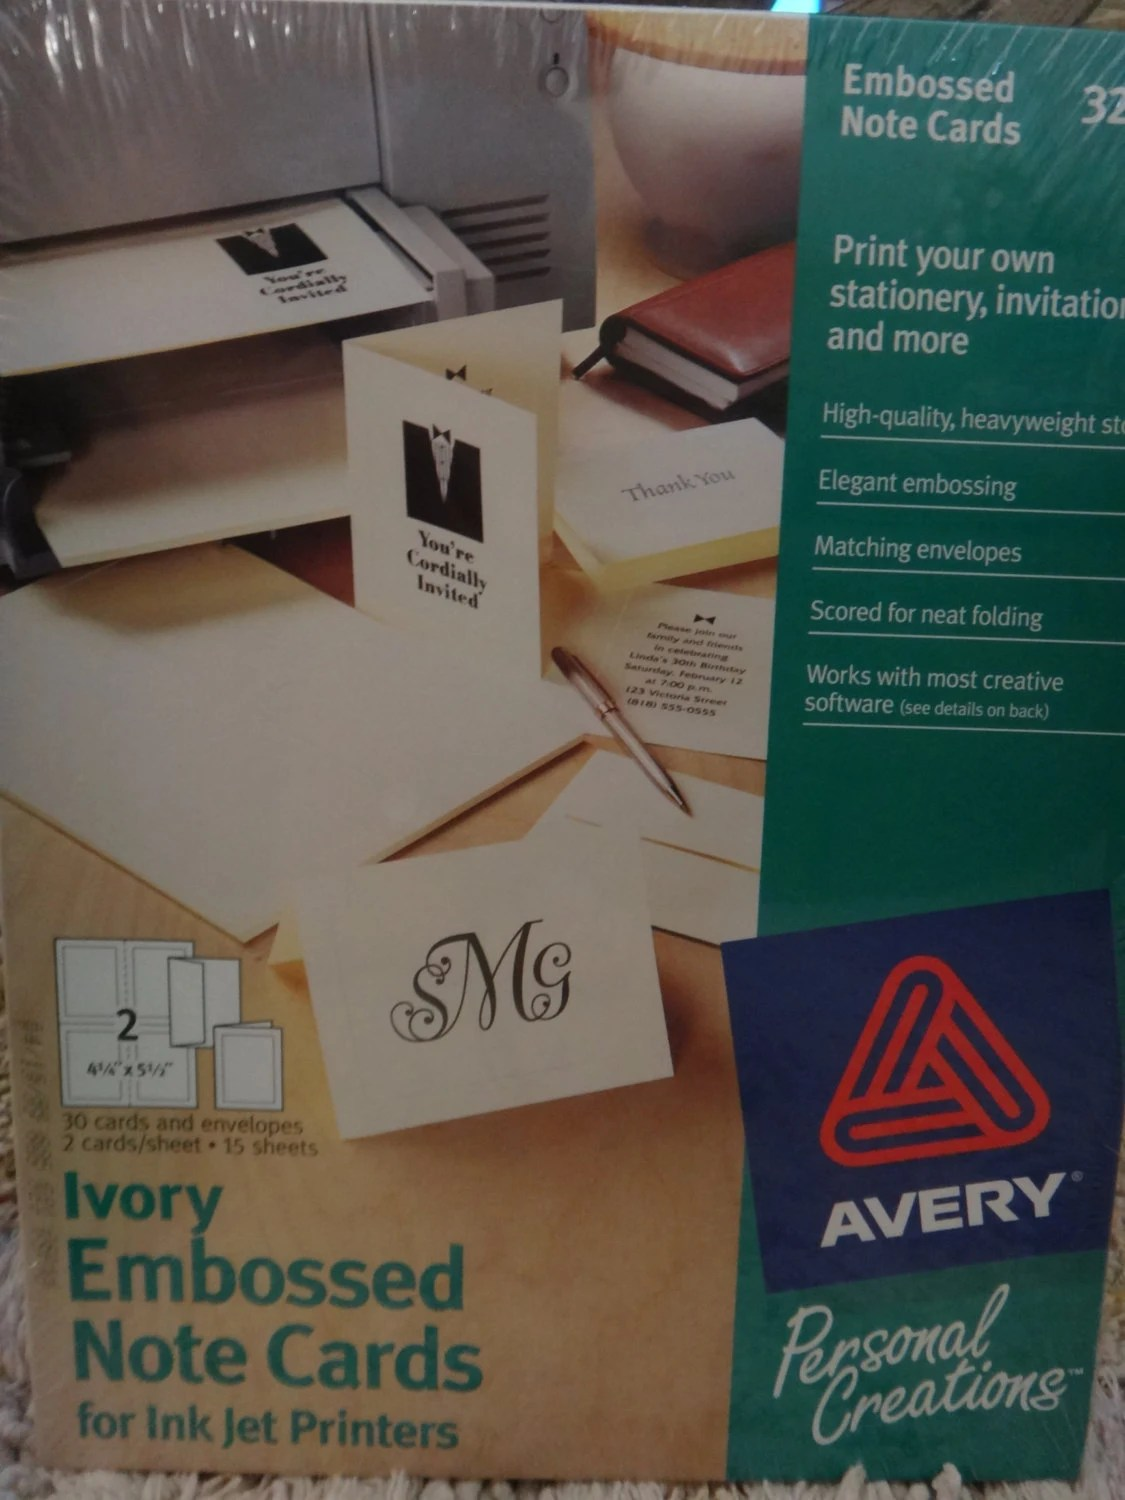 Free Shipping Avery 3259 Ivory Embossed Half-Fold Cards for Etsy